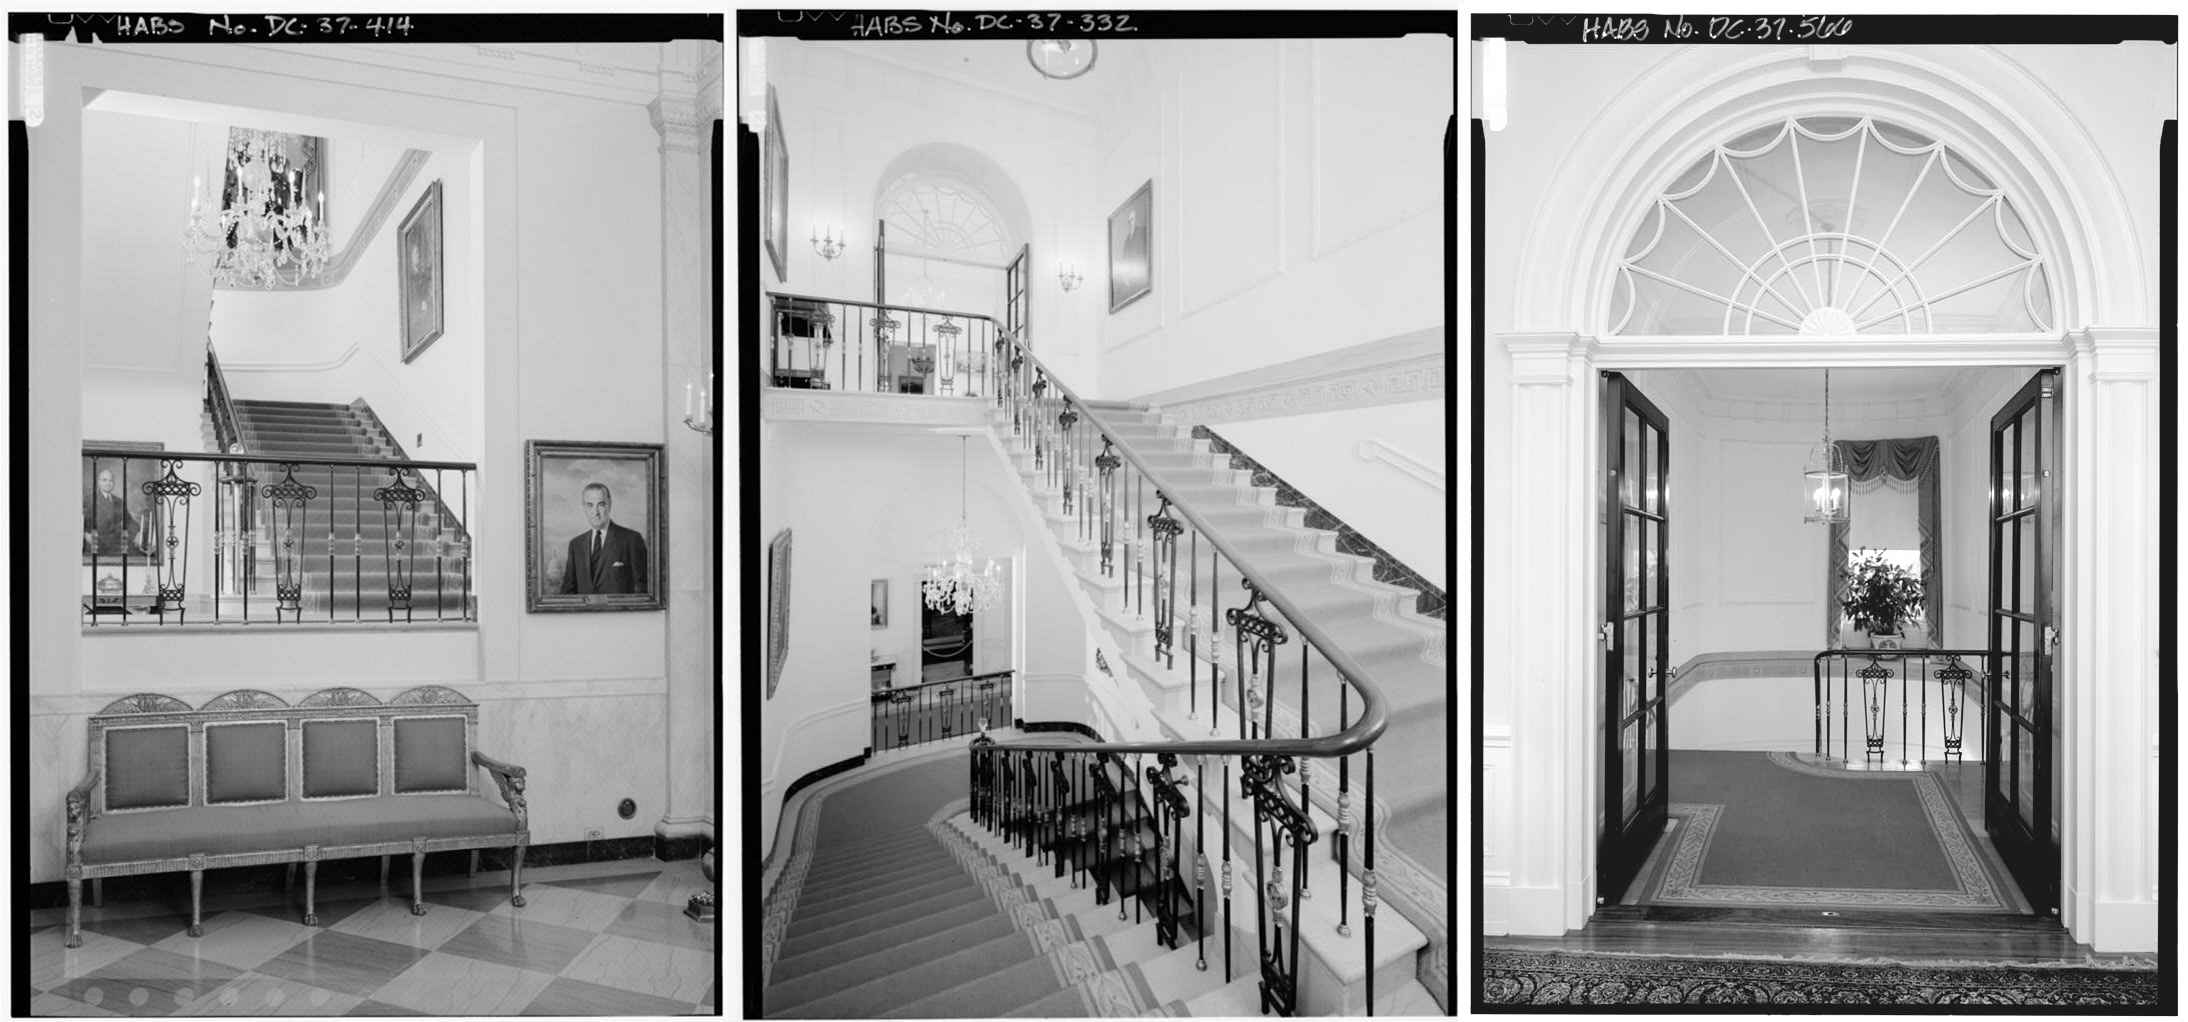 Eyeballing the White House Presidential ResidenceGrand Stair from First Floor to Second Floor  Looking North  left   Looking South  middle   Looking North from the Seconf Floor Central Hall  right